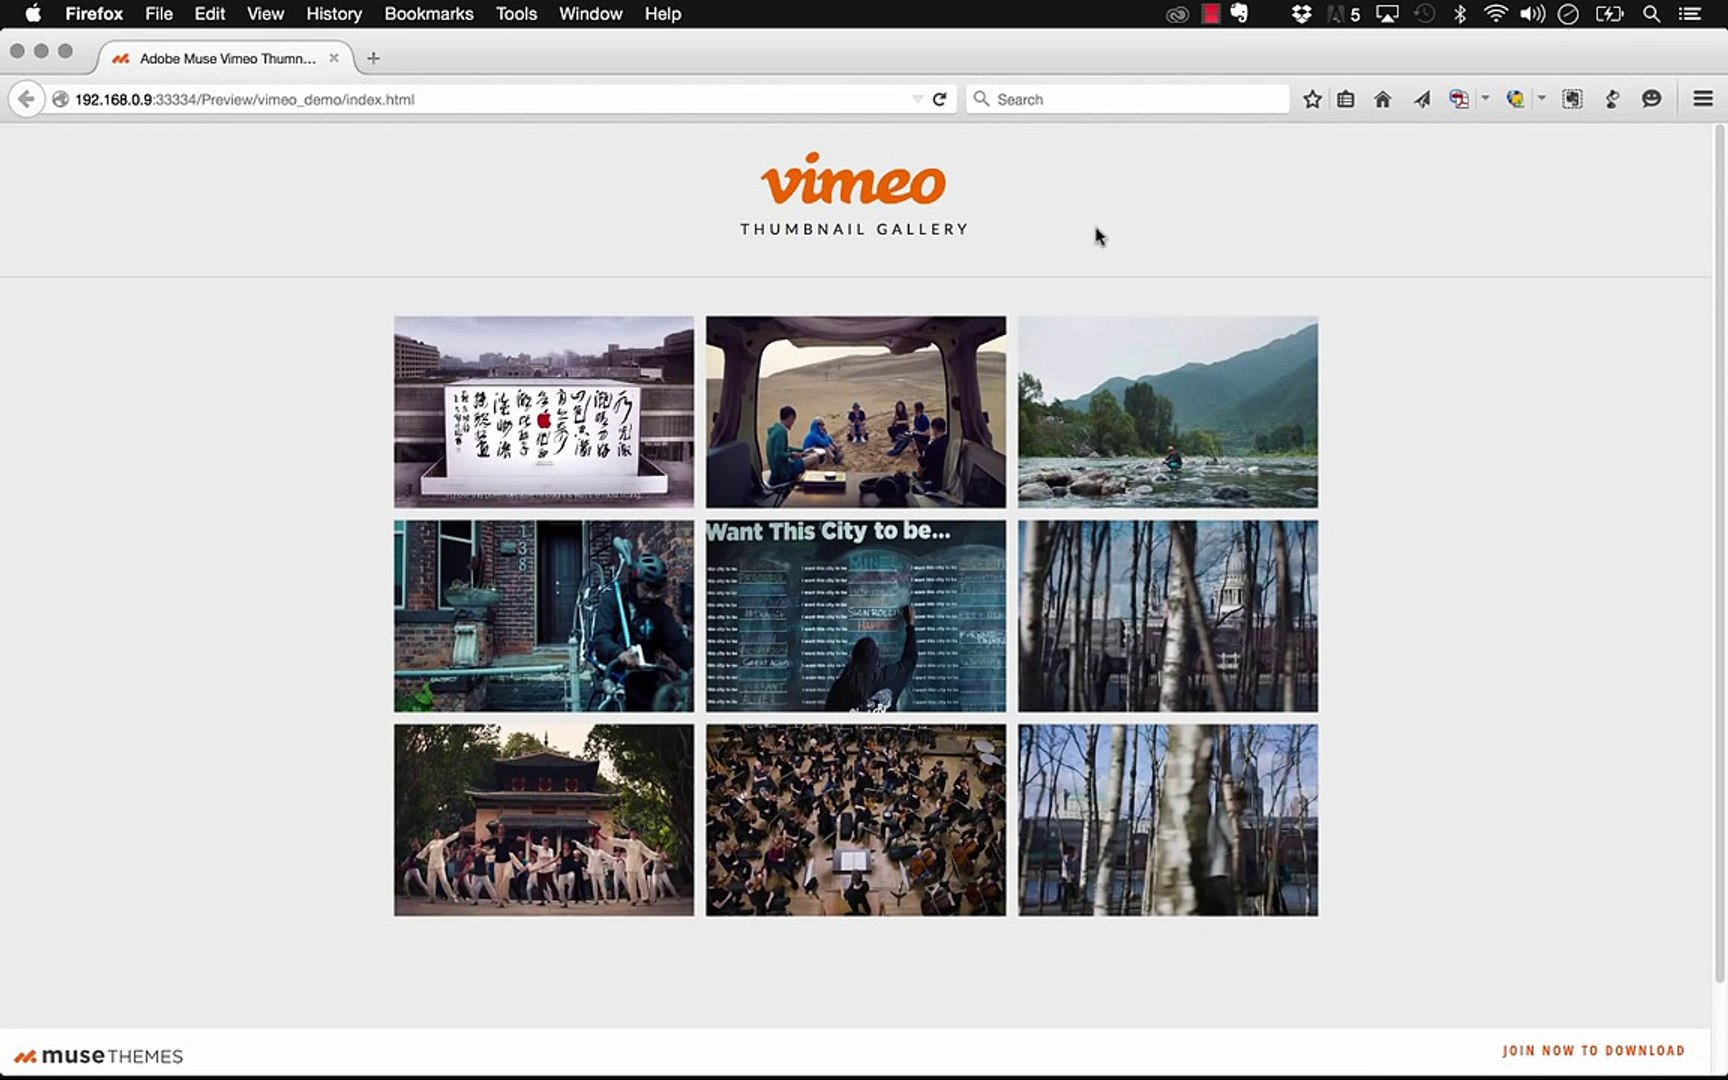 Vimeo Video Gallery in Adobe Muse CC - Widget Tutorial | MuseThemes com